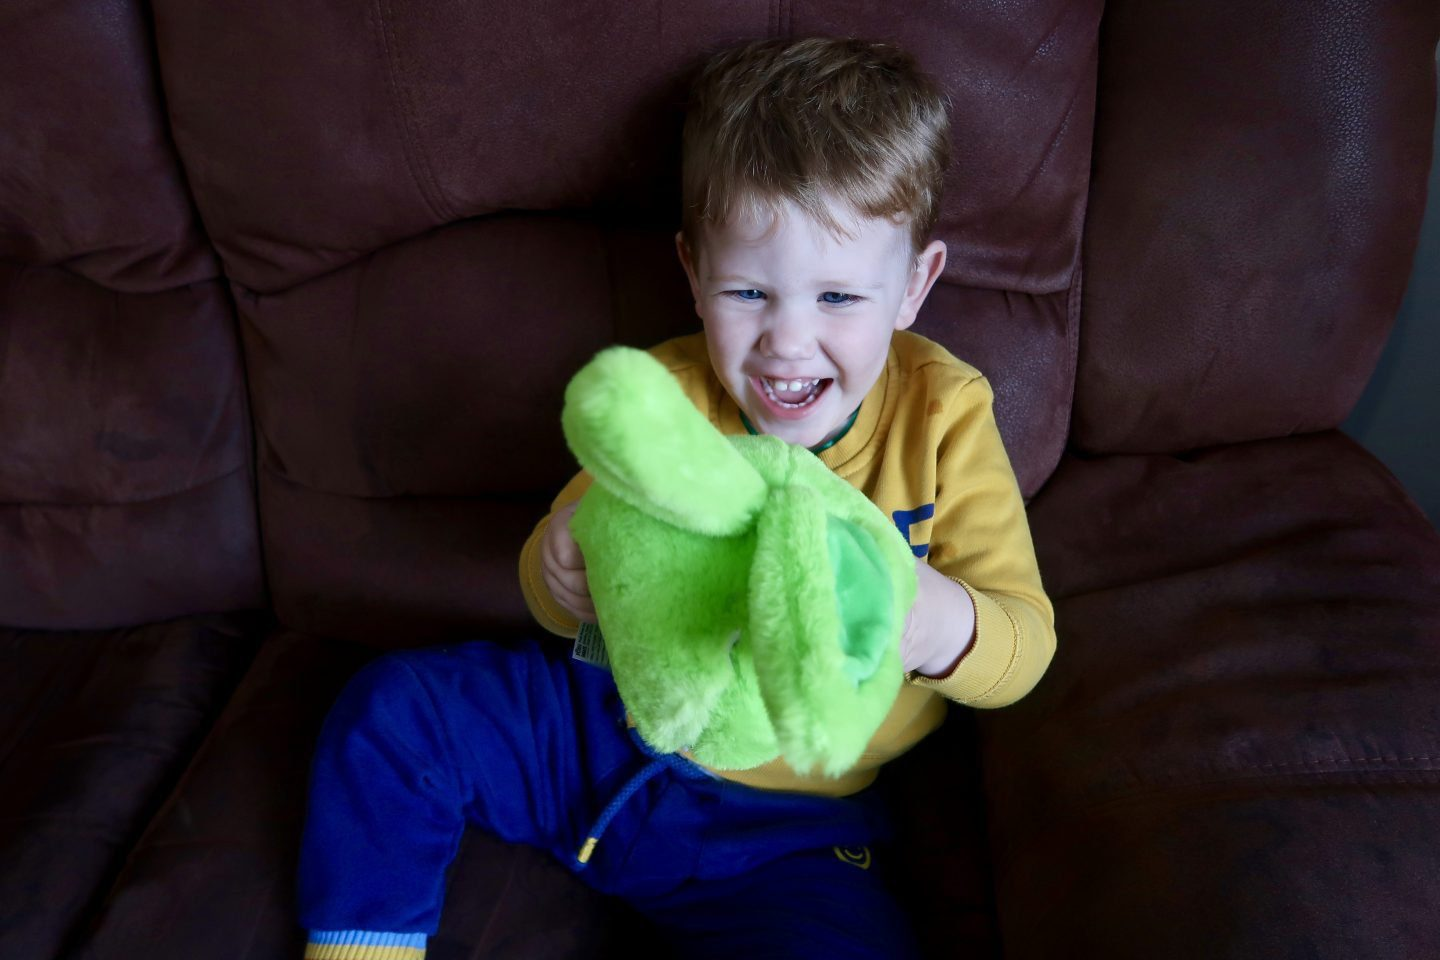 A toddler laughing at a green fluffy toy in his hands